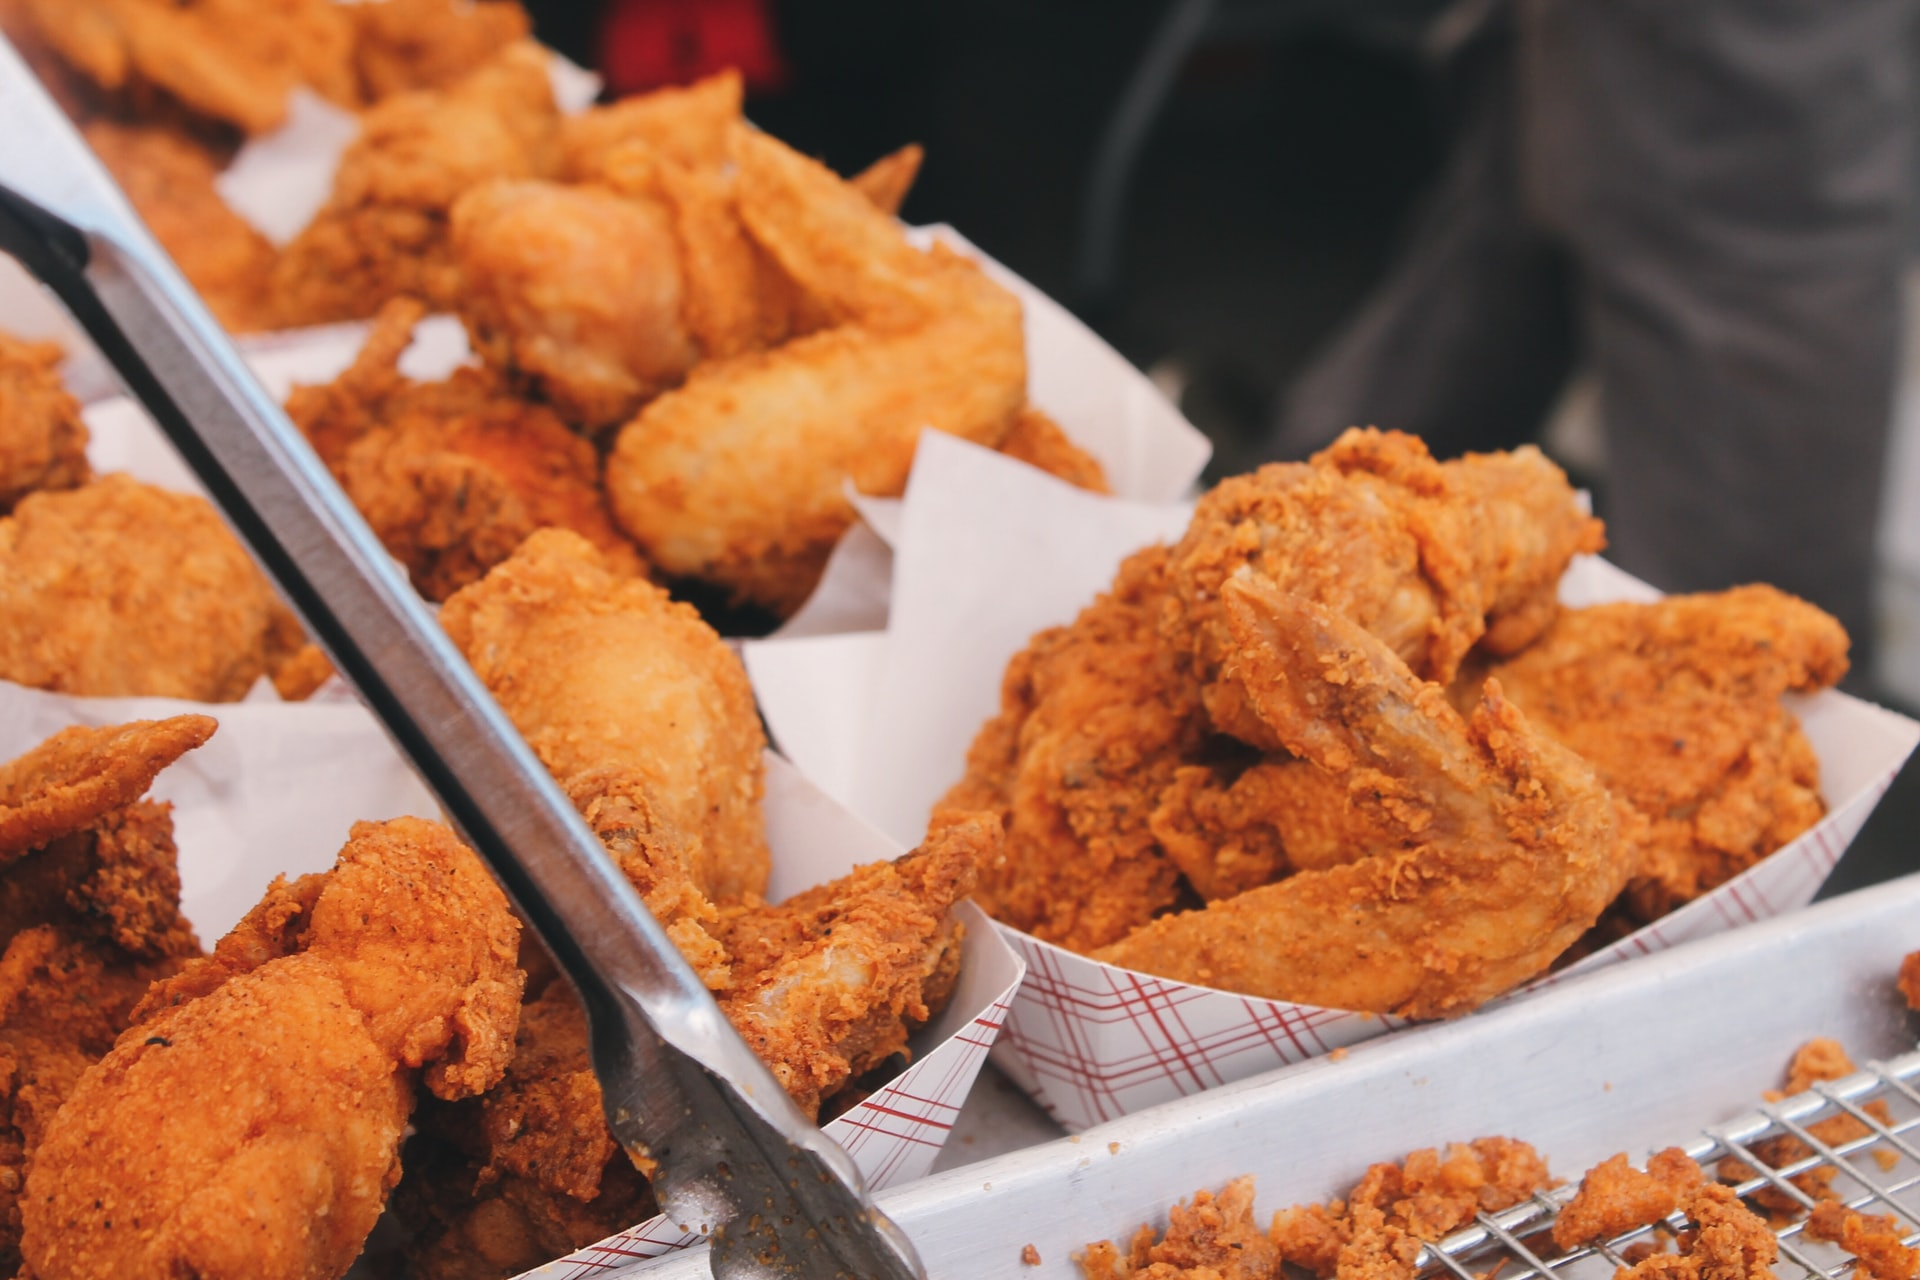 Rows of fried chicken in paper containers